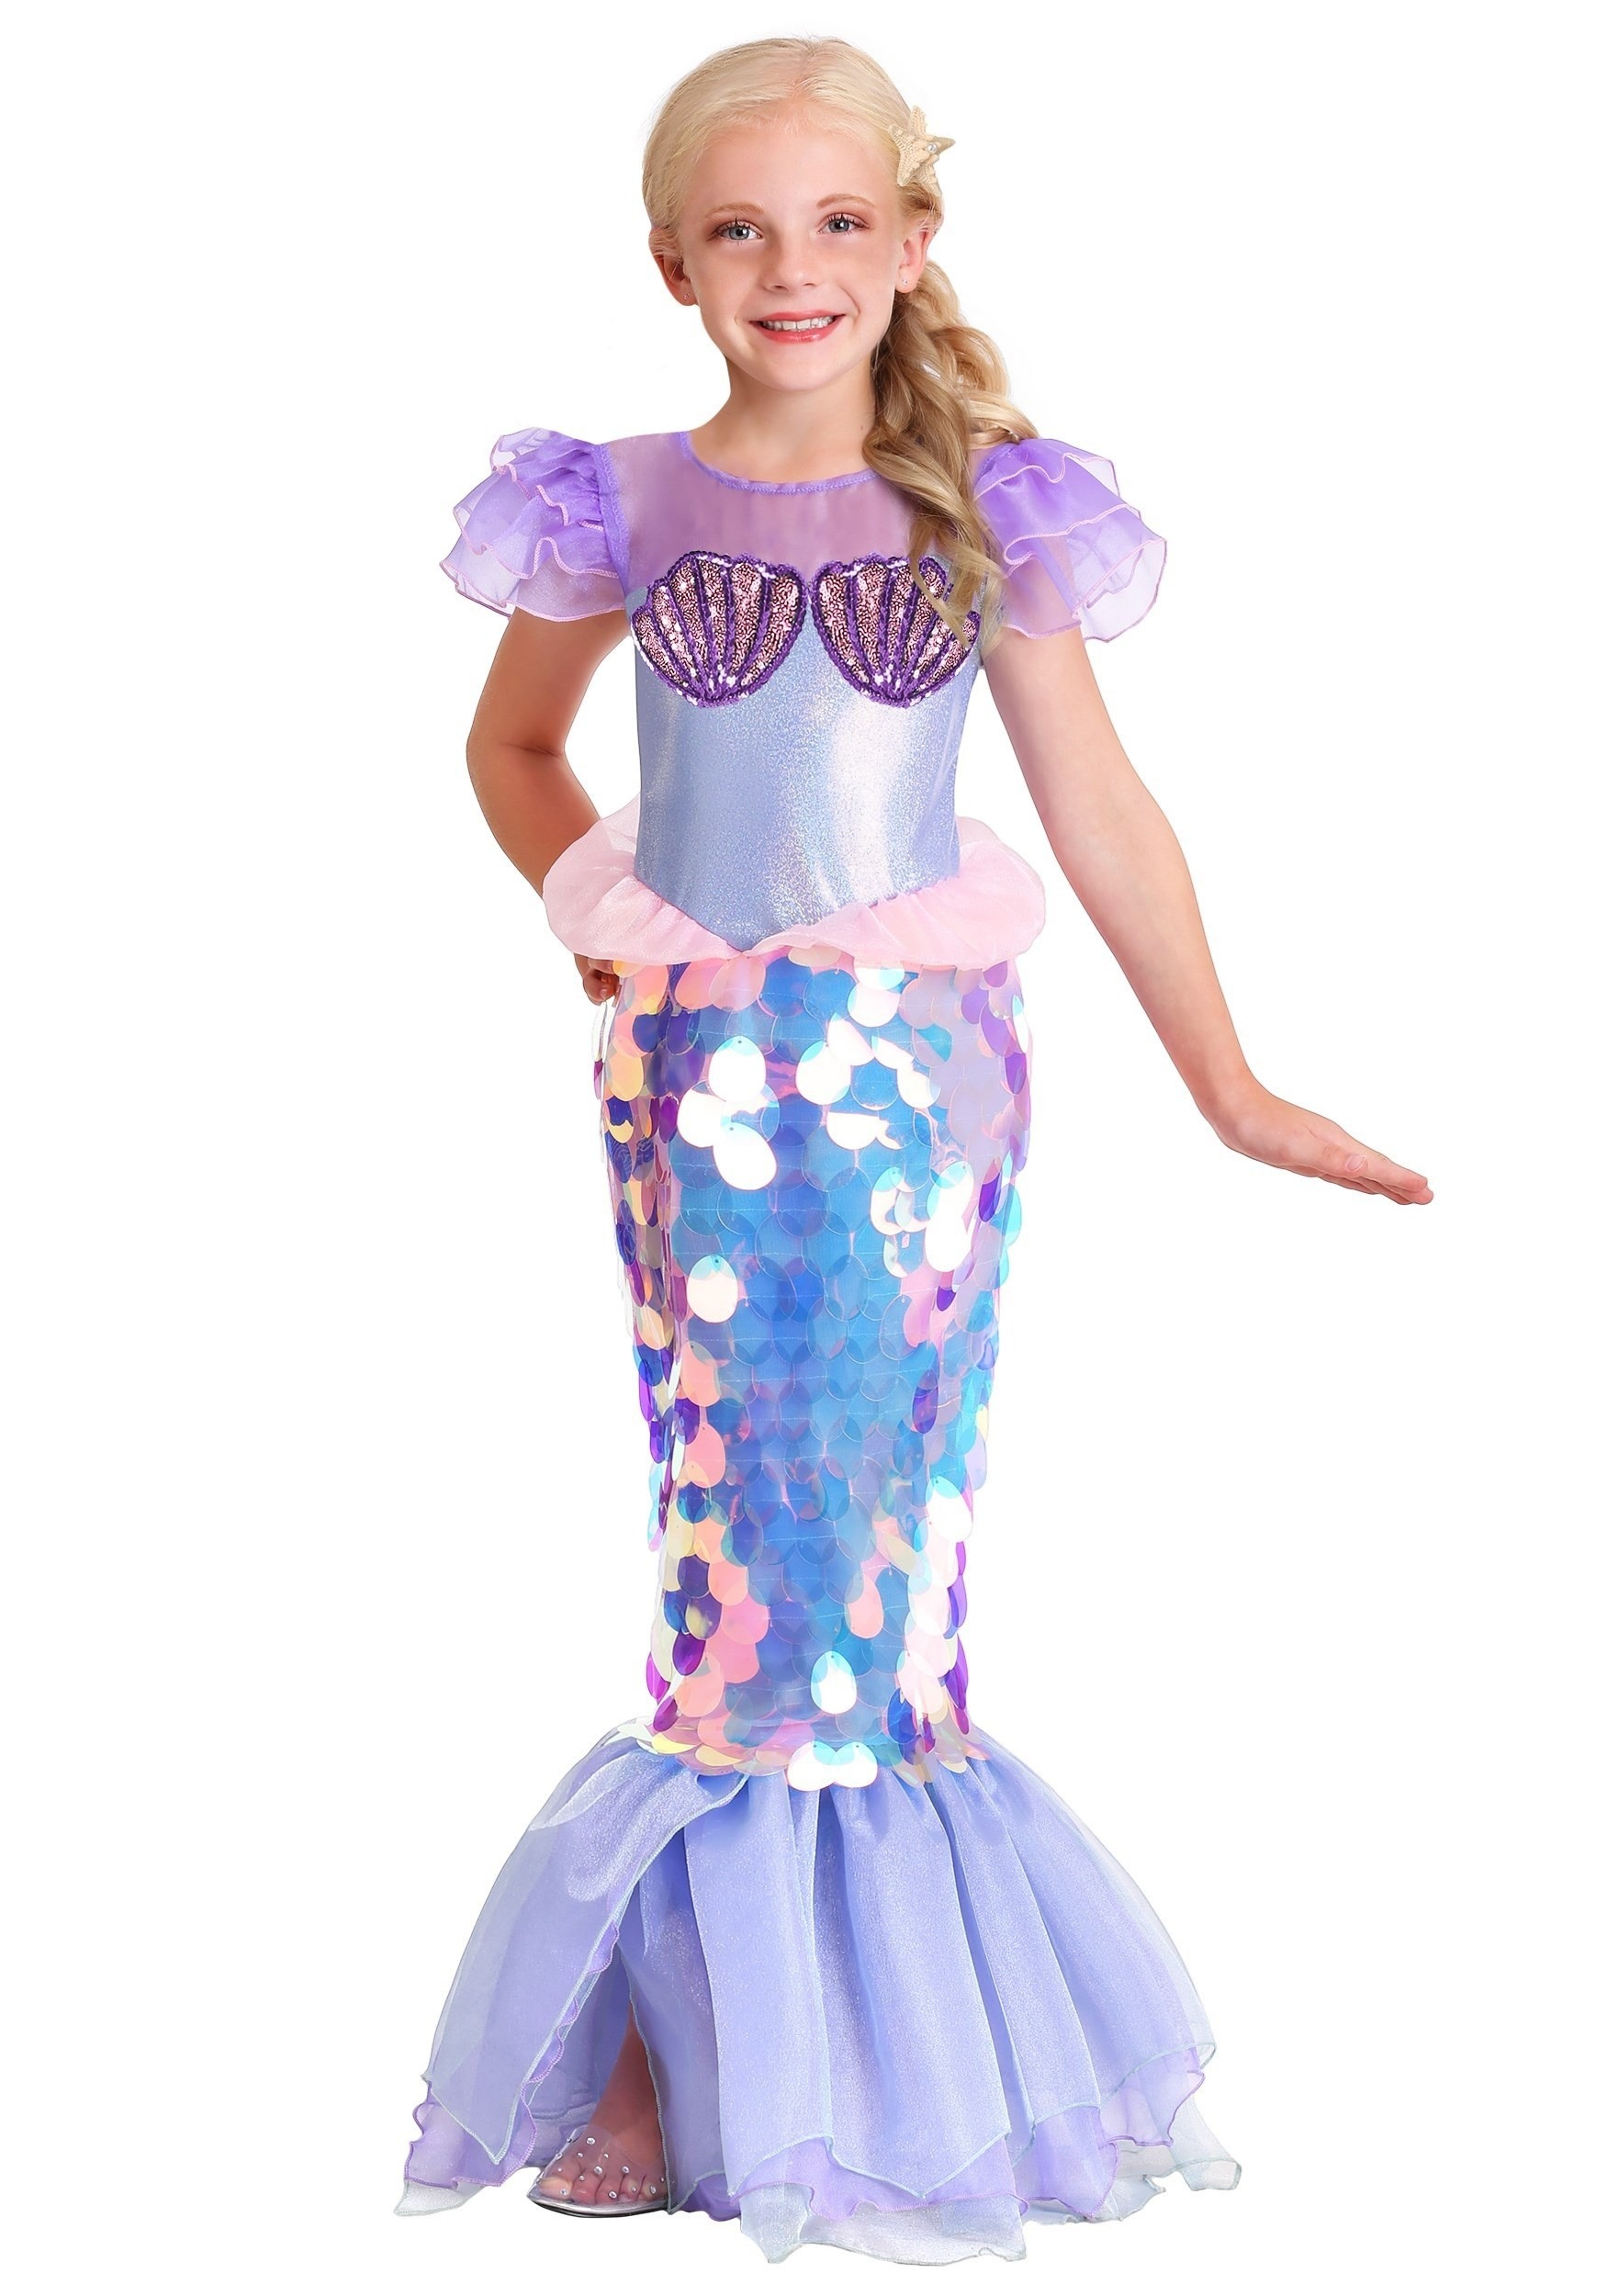 Sparkling Mermaid Costume | Exclusive | Made By Us